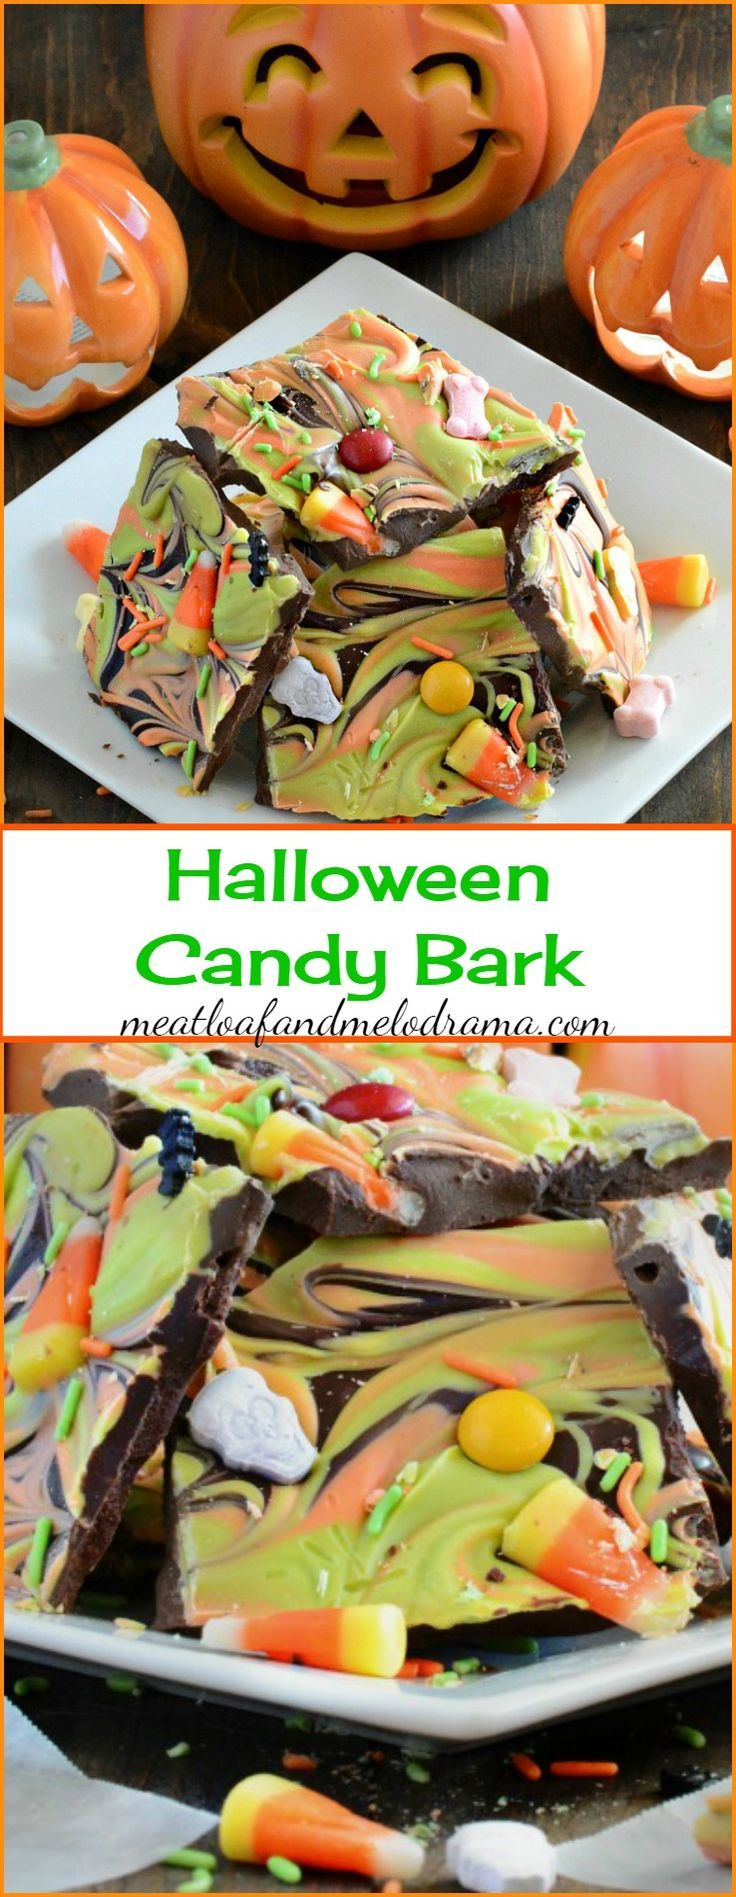 Best 25+ Halloween bark ideas on Pinterest | Easy halloween snacks ...